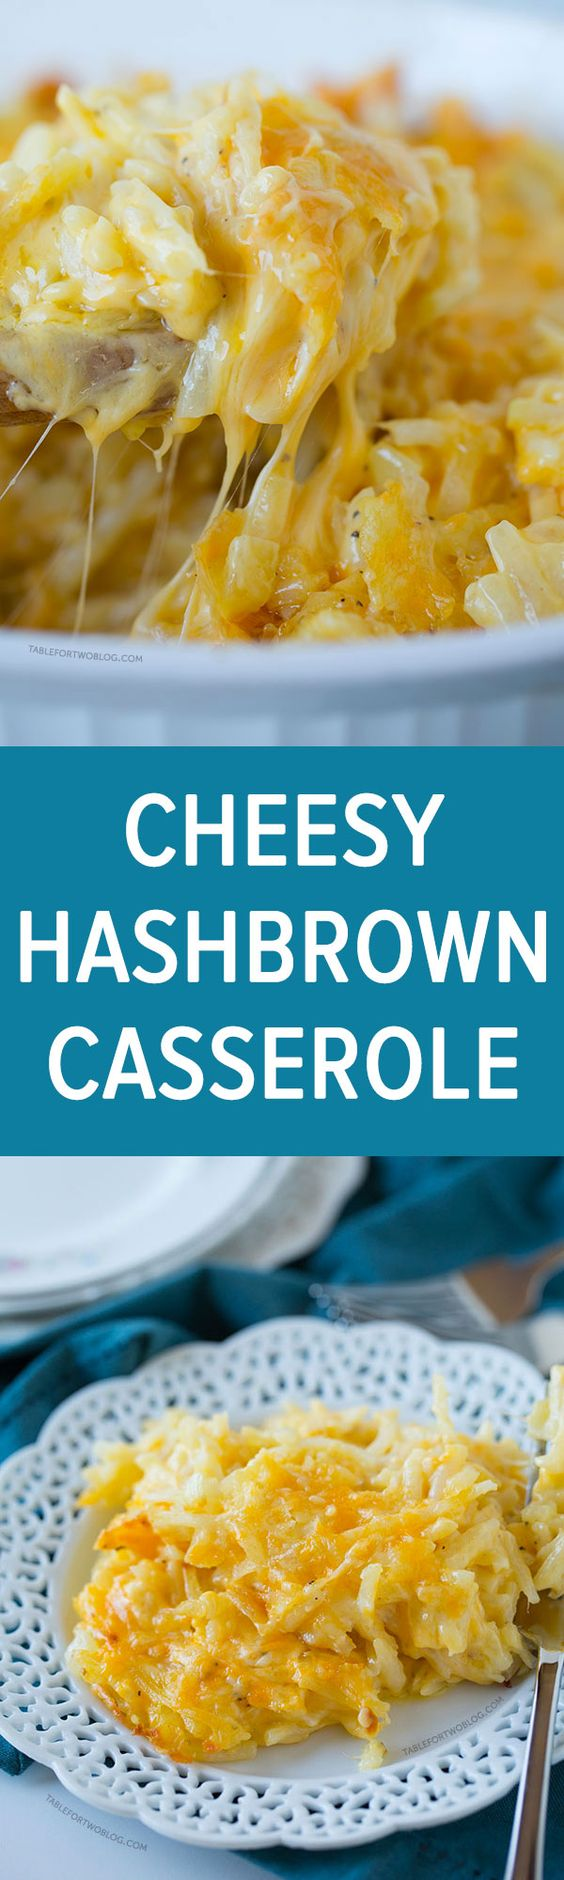 This cheesy hashbrown casserole is a simple and delicious side dish addition to your family brunch or large gathering!